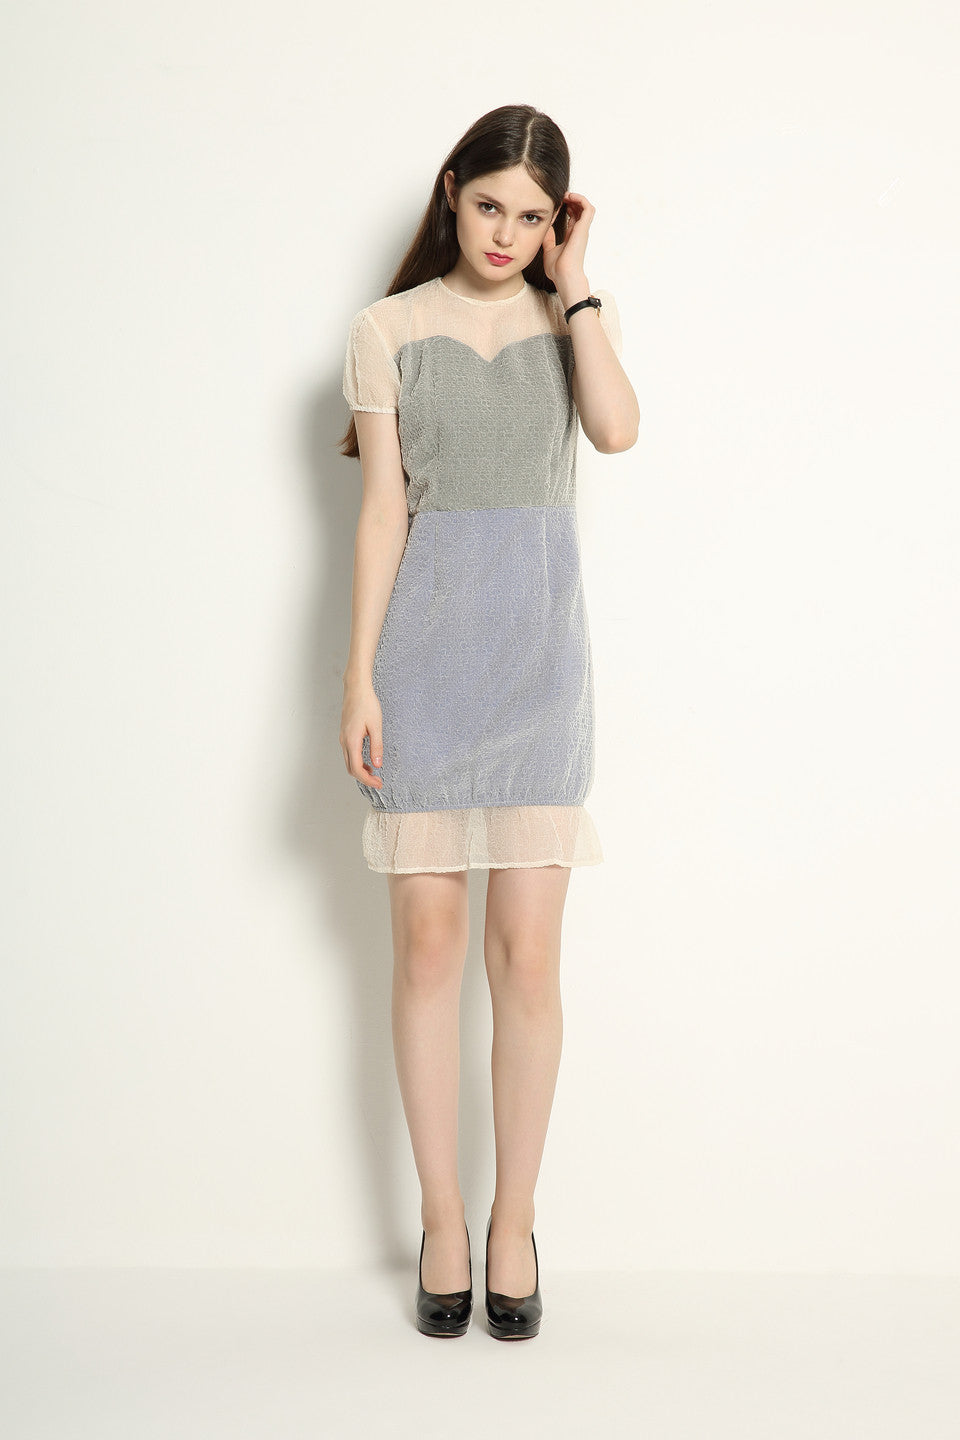 Organza Double Layered Contrast Dress - GlanceZ   - 2